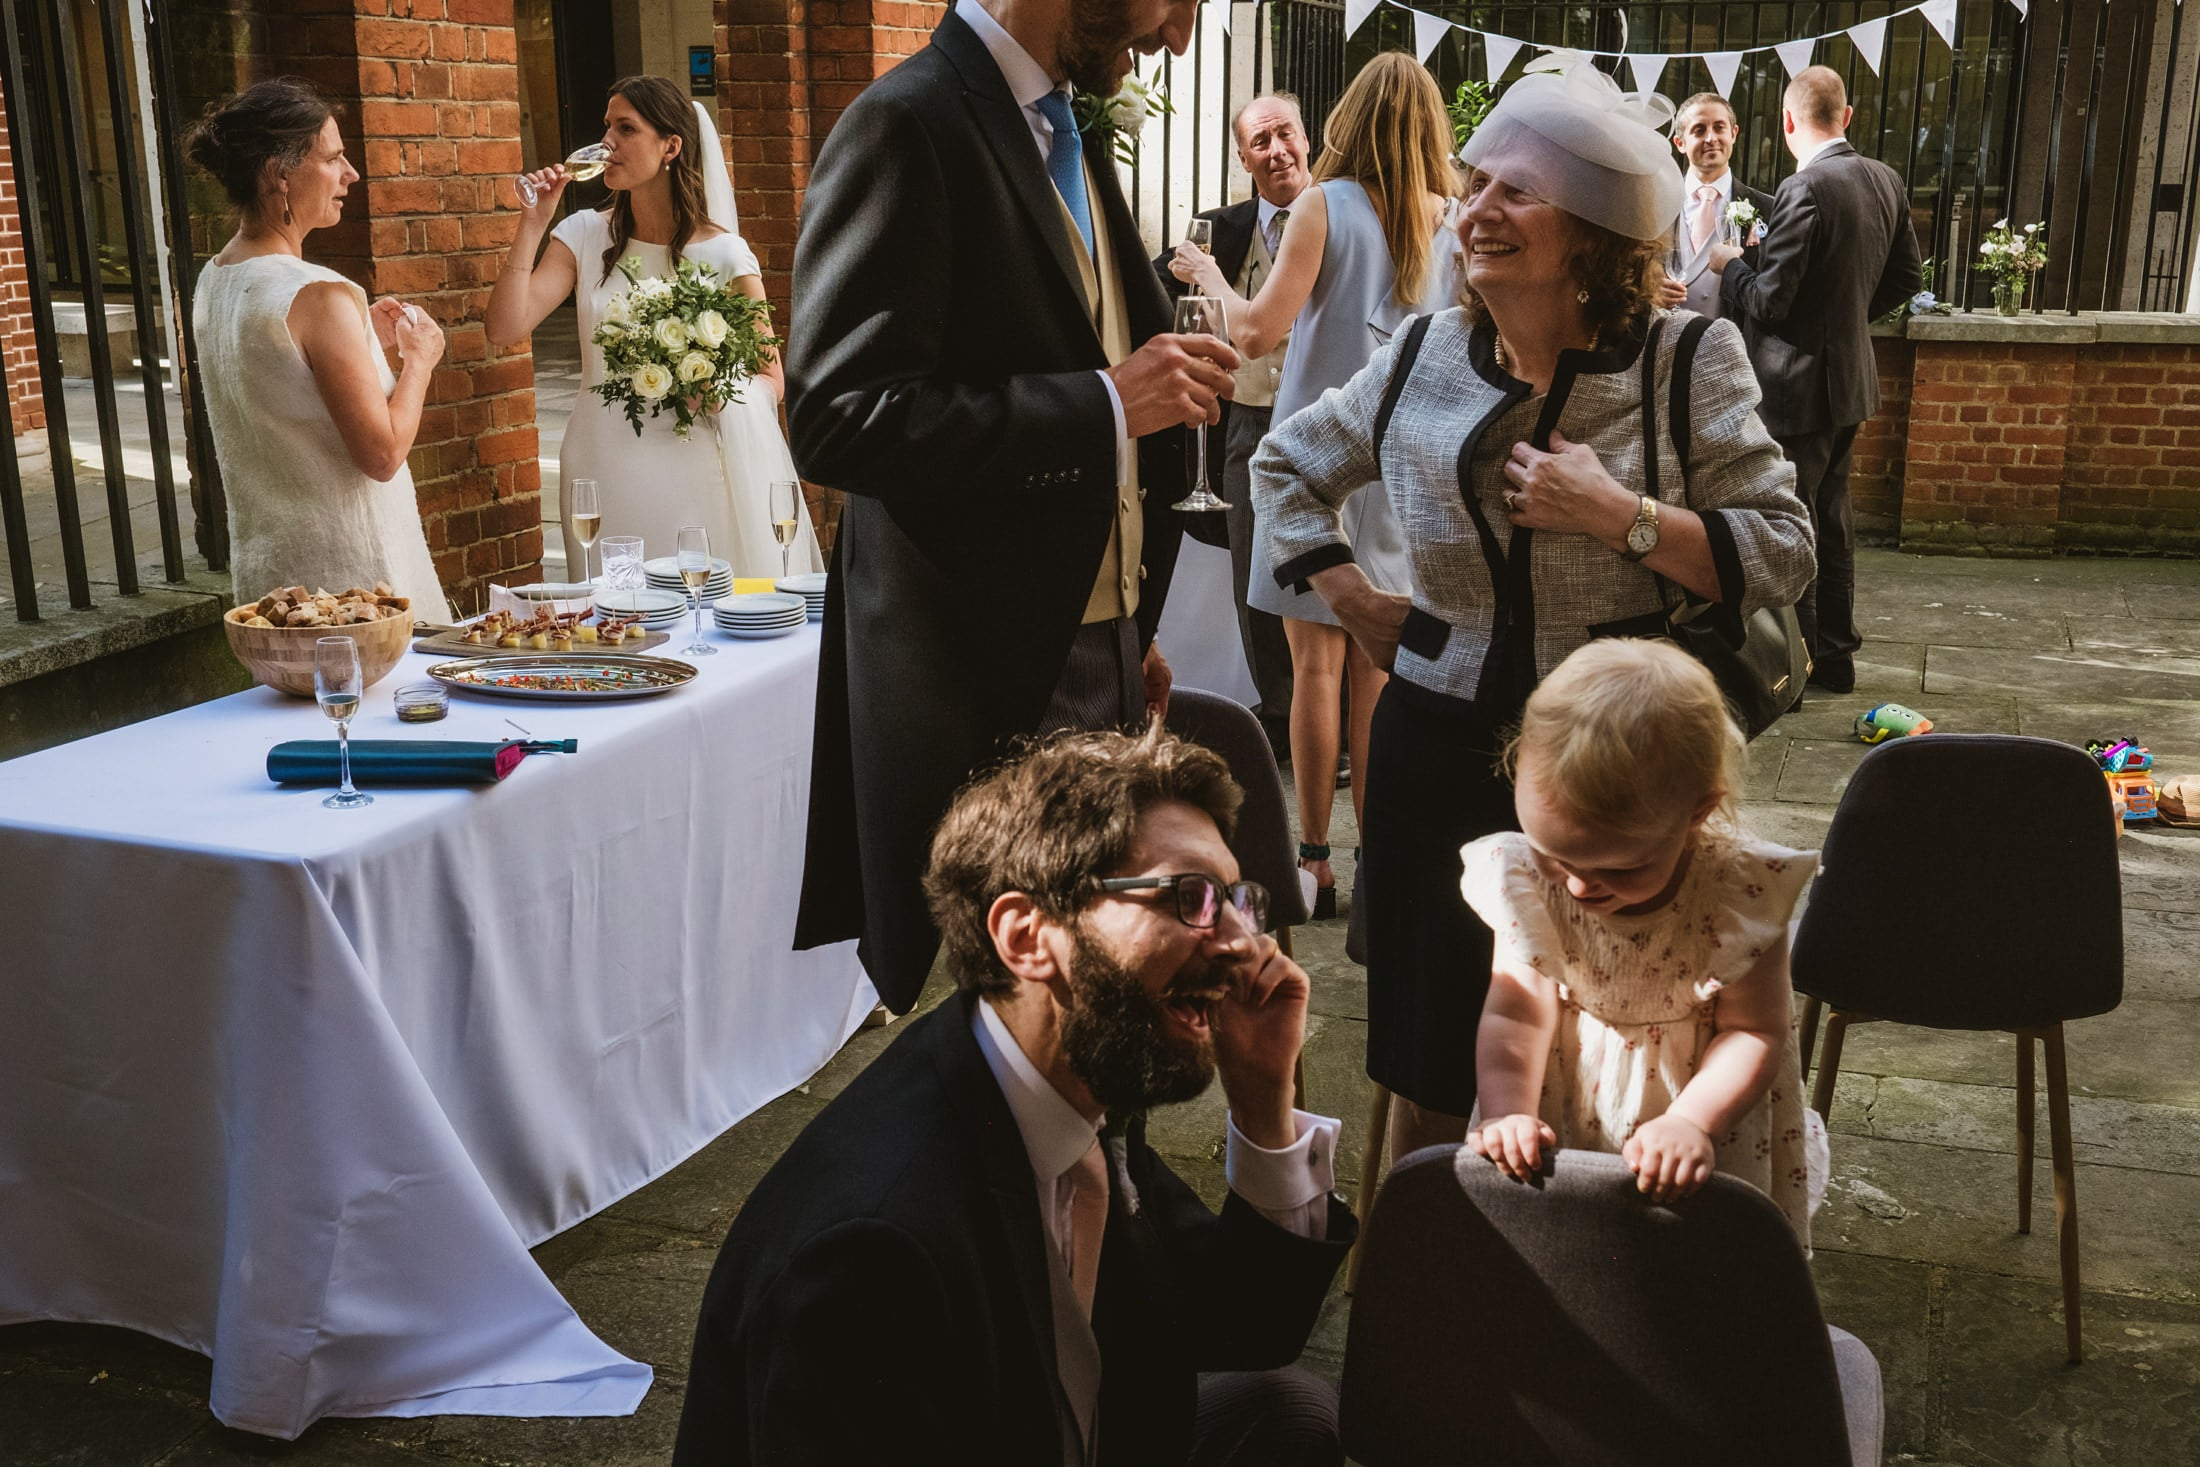 Guests interact at an intimate London wedding. To the left the bride sips champagne whilst in conversation with a female guest as they stand behind a table. Beside them but in the foreground the groom, his face not visible, separates the frame as he talks to a smiling woman beside him. Framed either side of them in the background other guests share private conversations whilst at the very front of the image a man crouches down to the height of the child next to him and both appear to be laughing